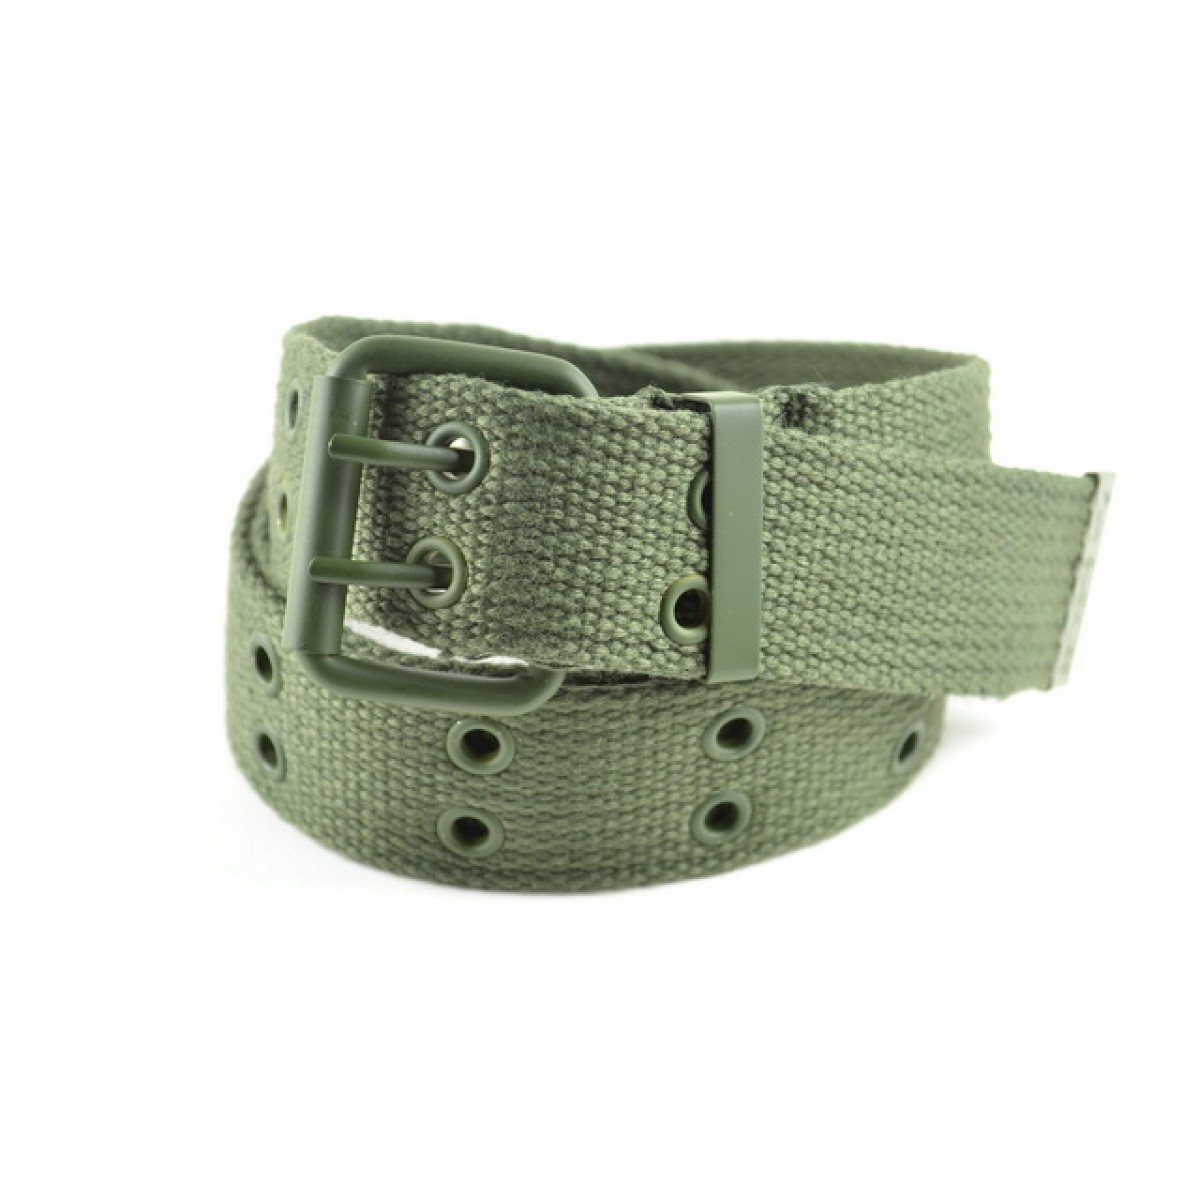 Wholesale Military Canvas Web Belts in Green Color e888f1a5974